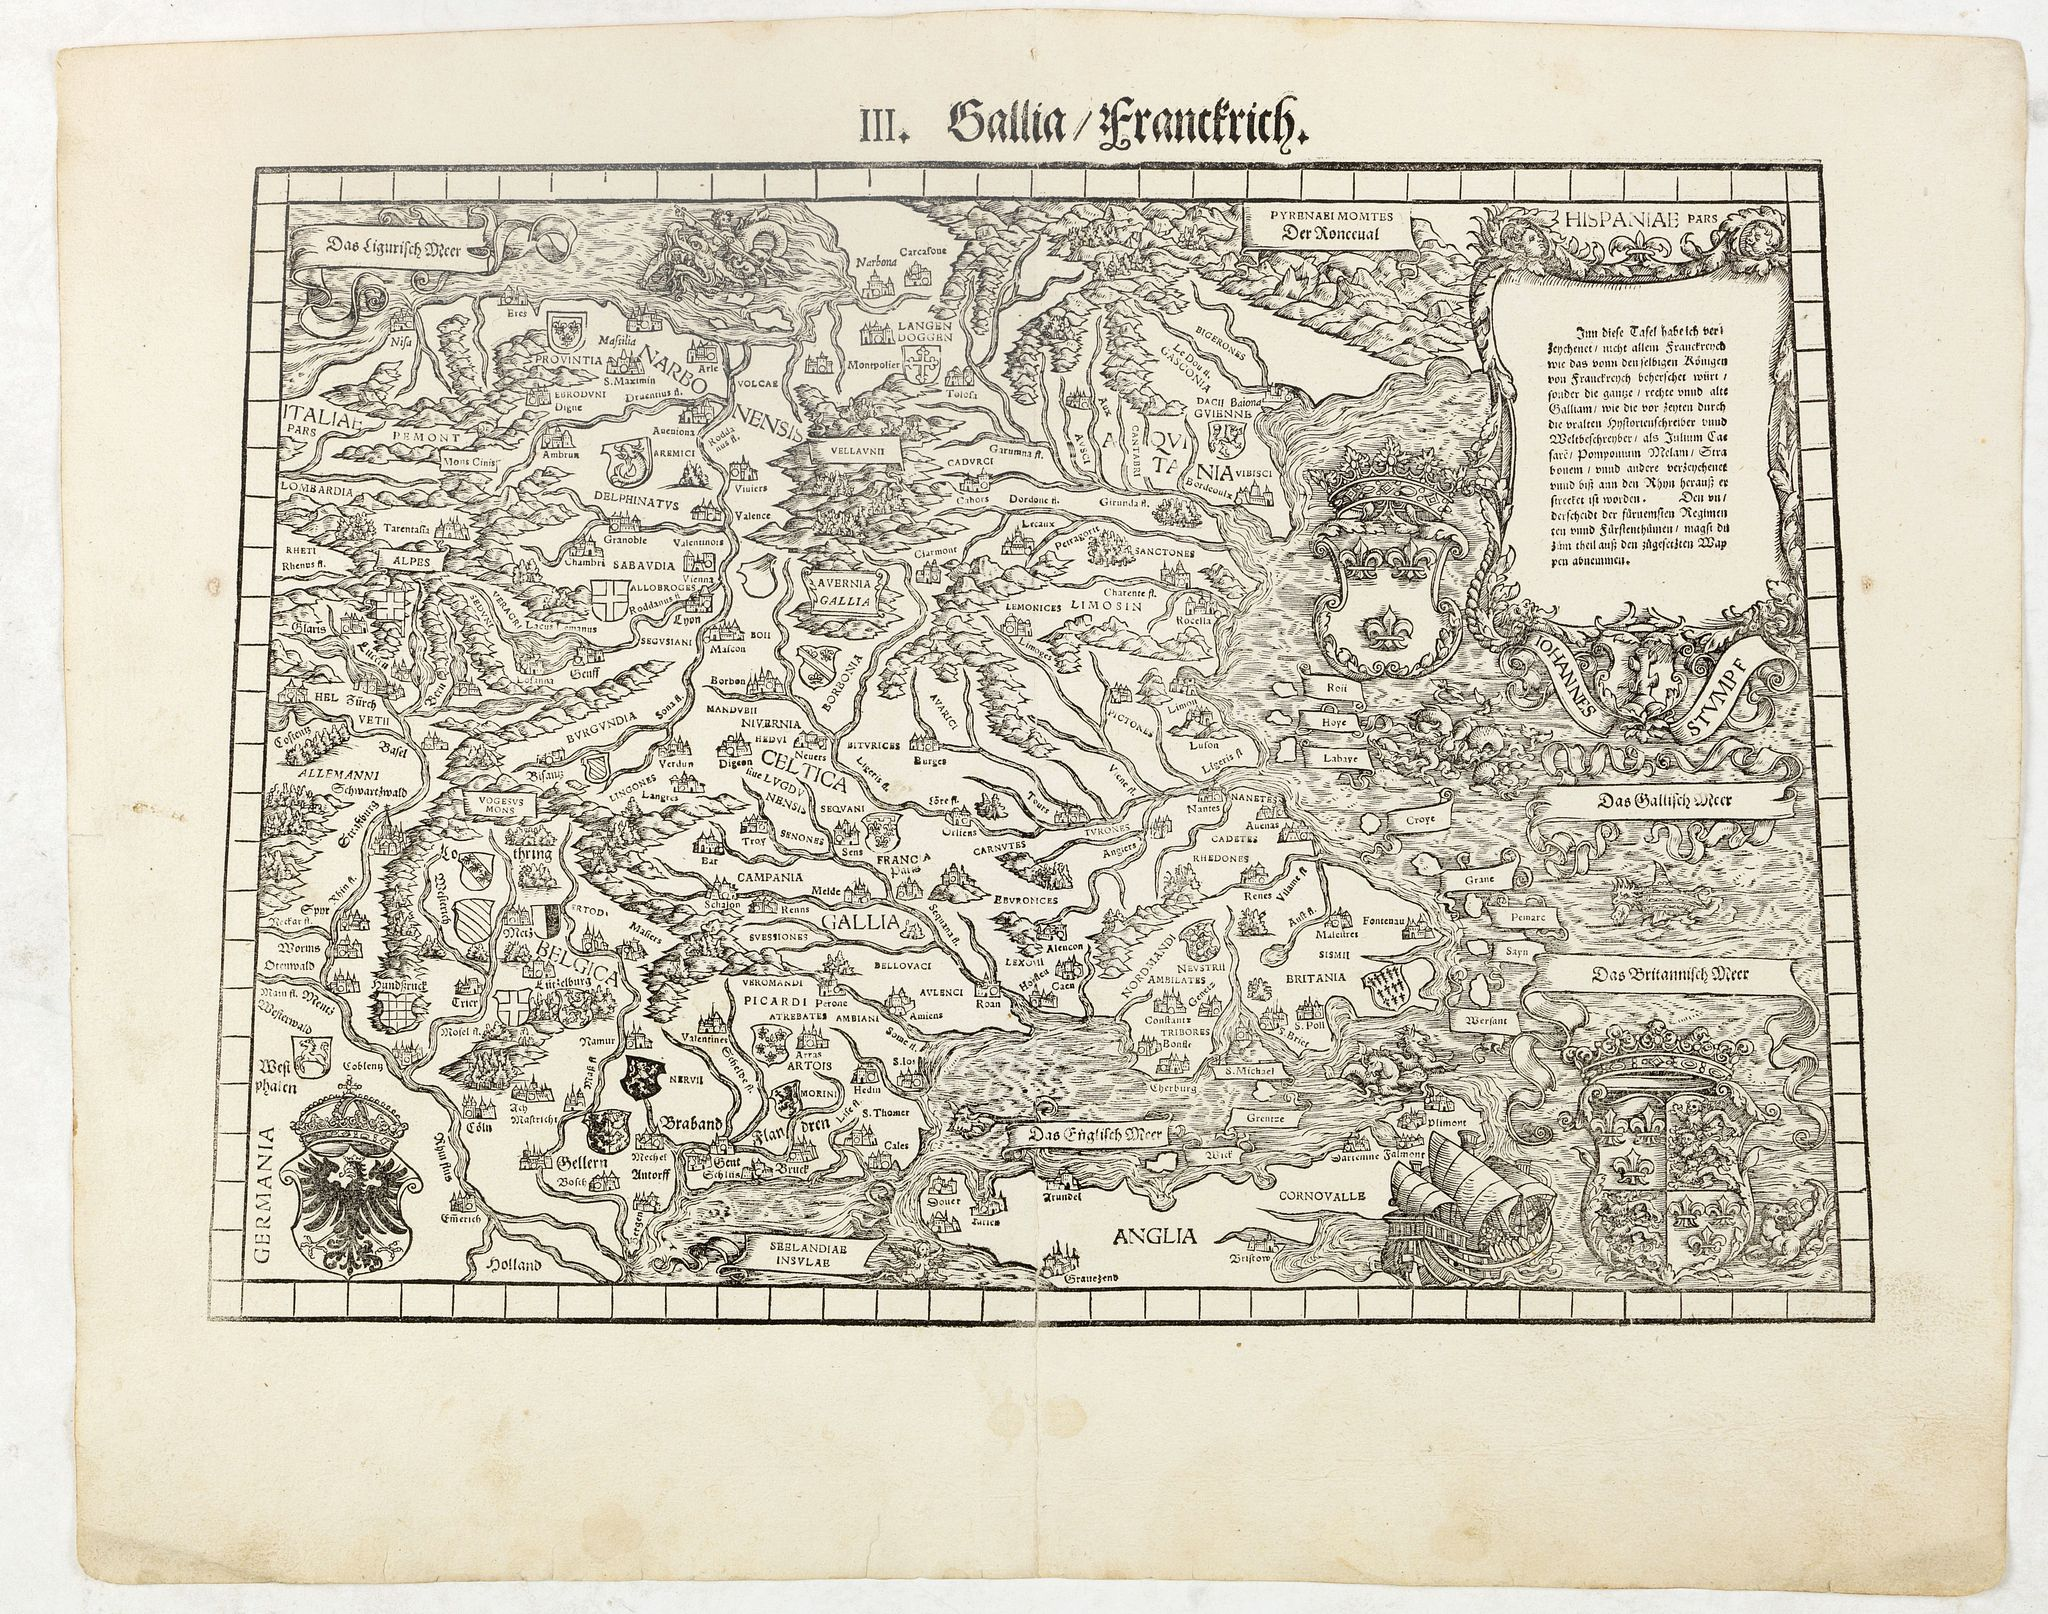 STUMPF, J.,  III. Gallia. Franckrych., antique map, old maps